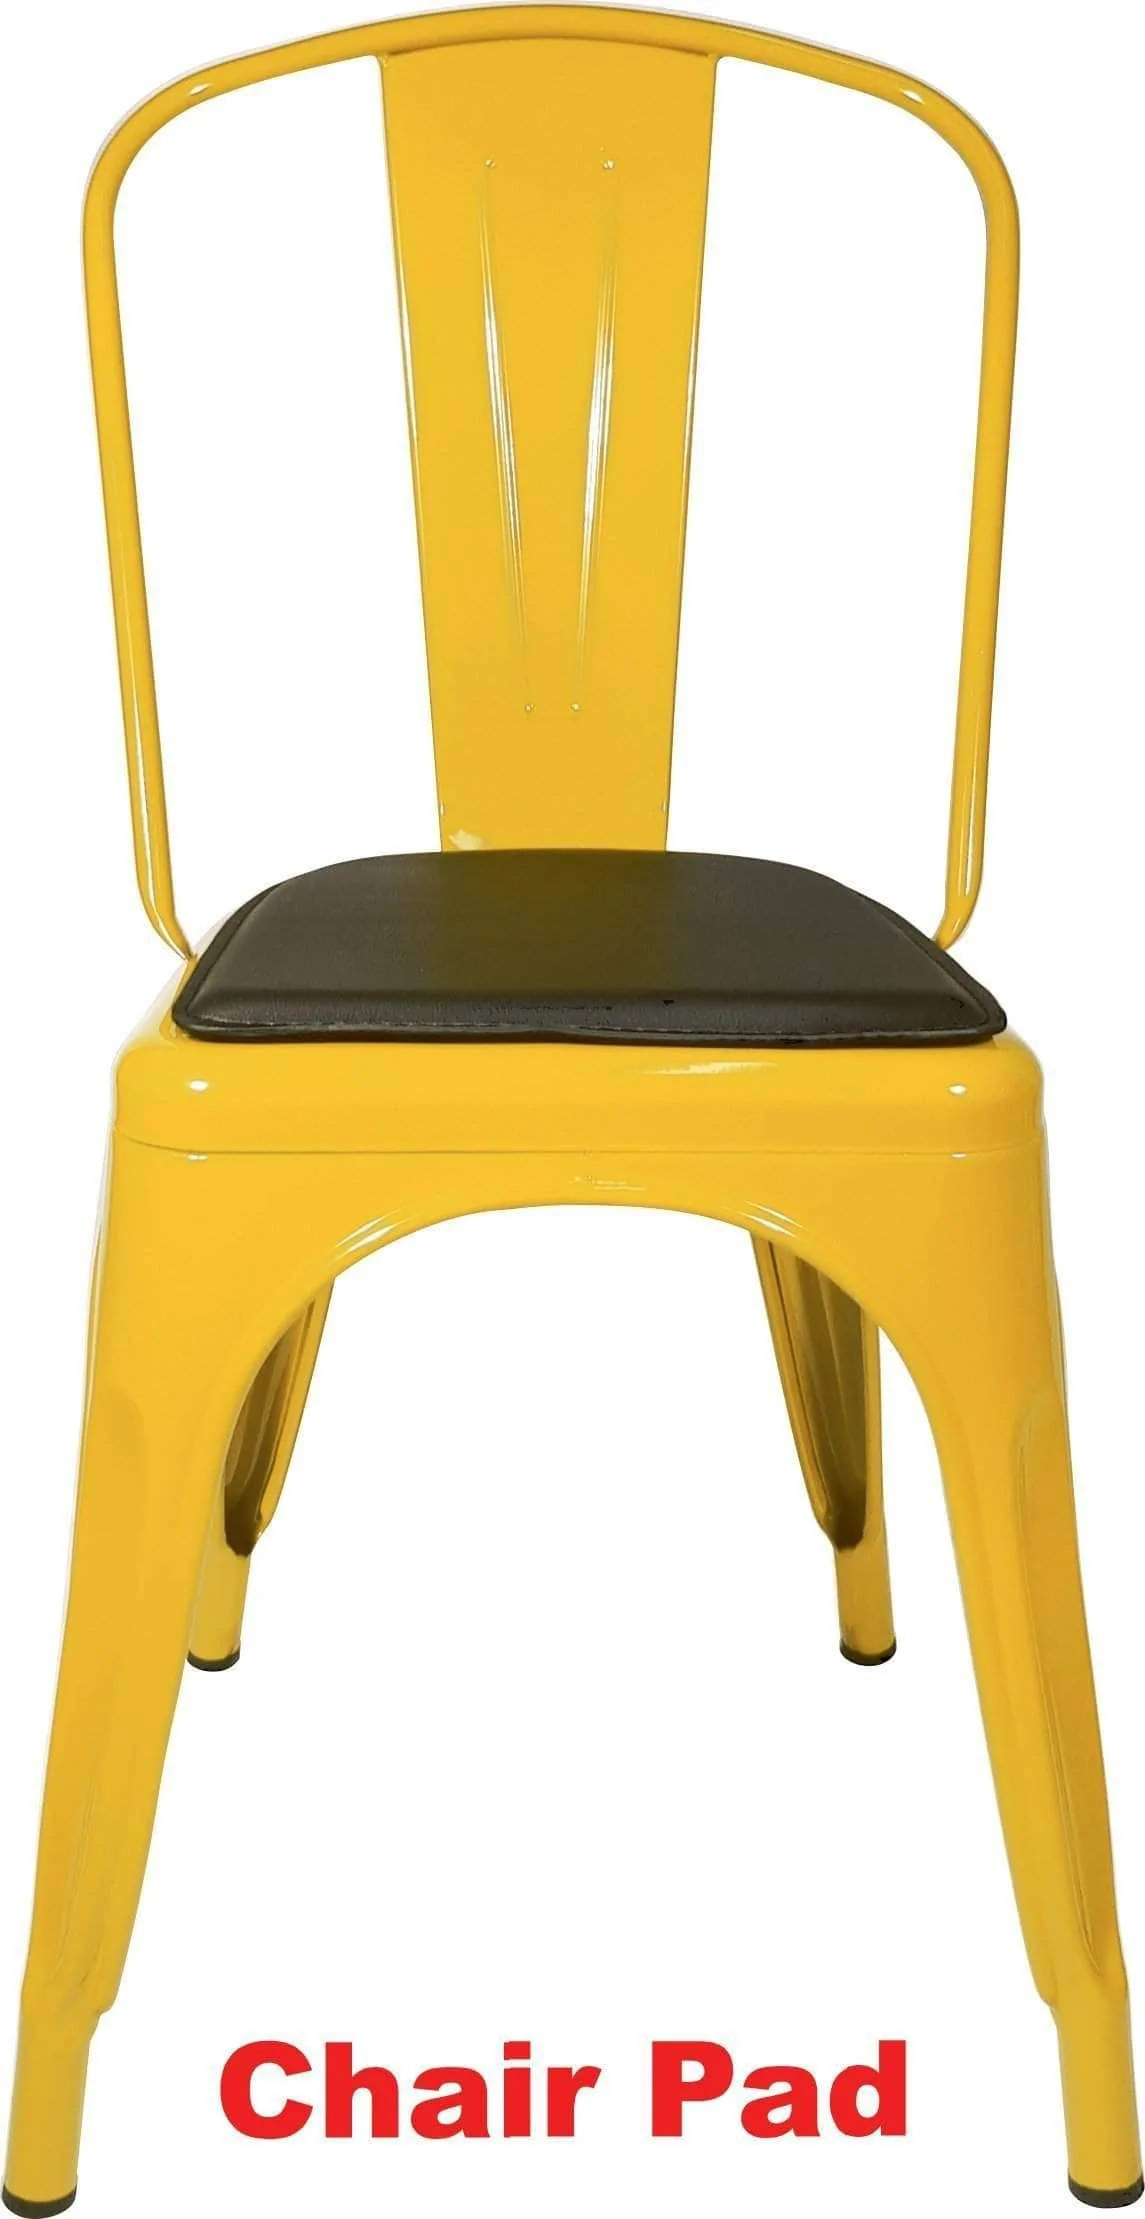 Tolix Replica Cafe Chair Yellow  Buy Online  AFTERPAY